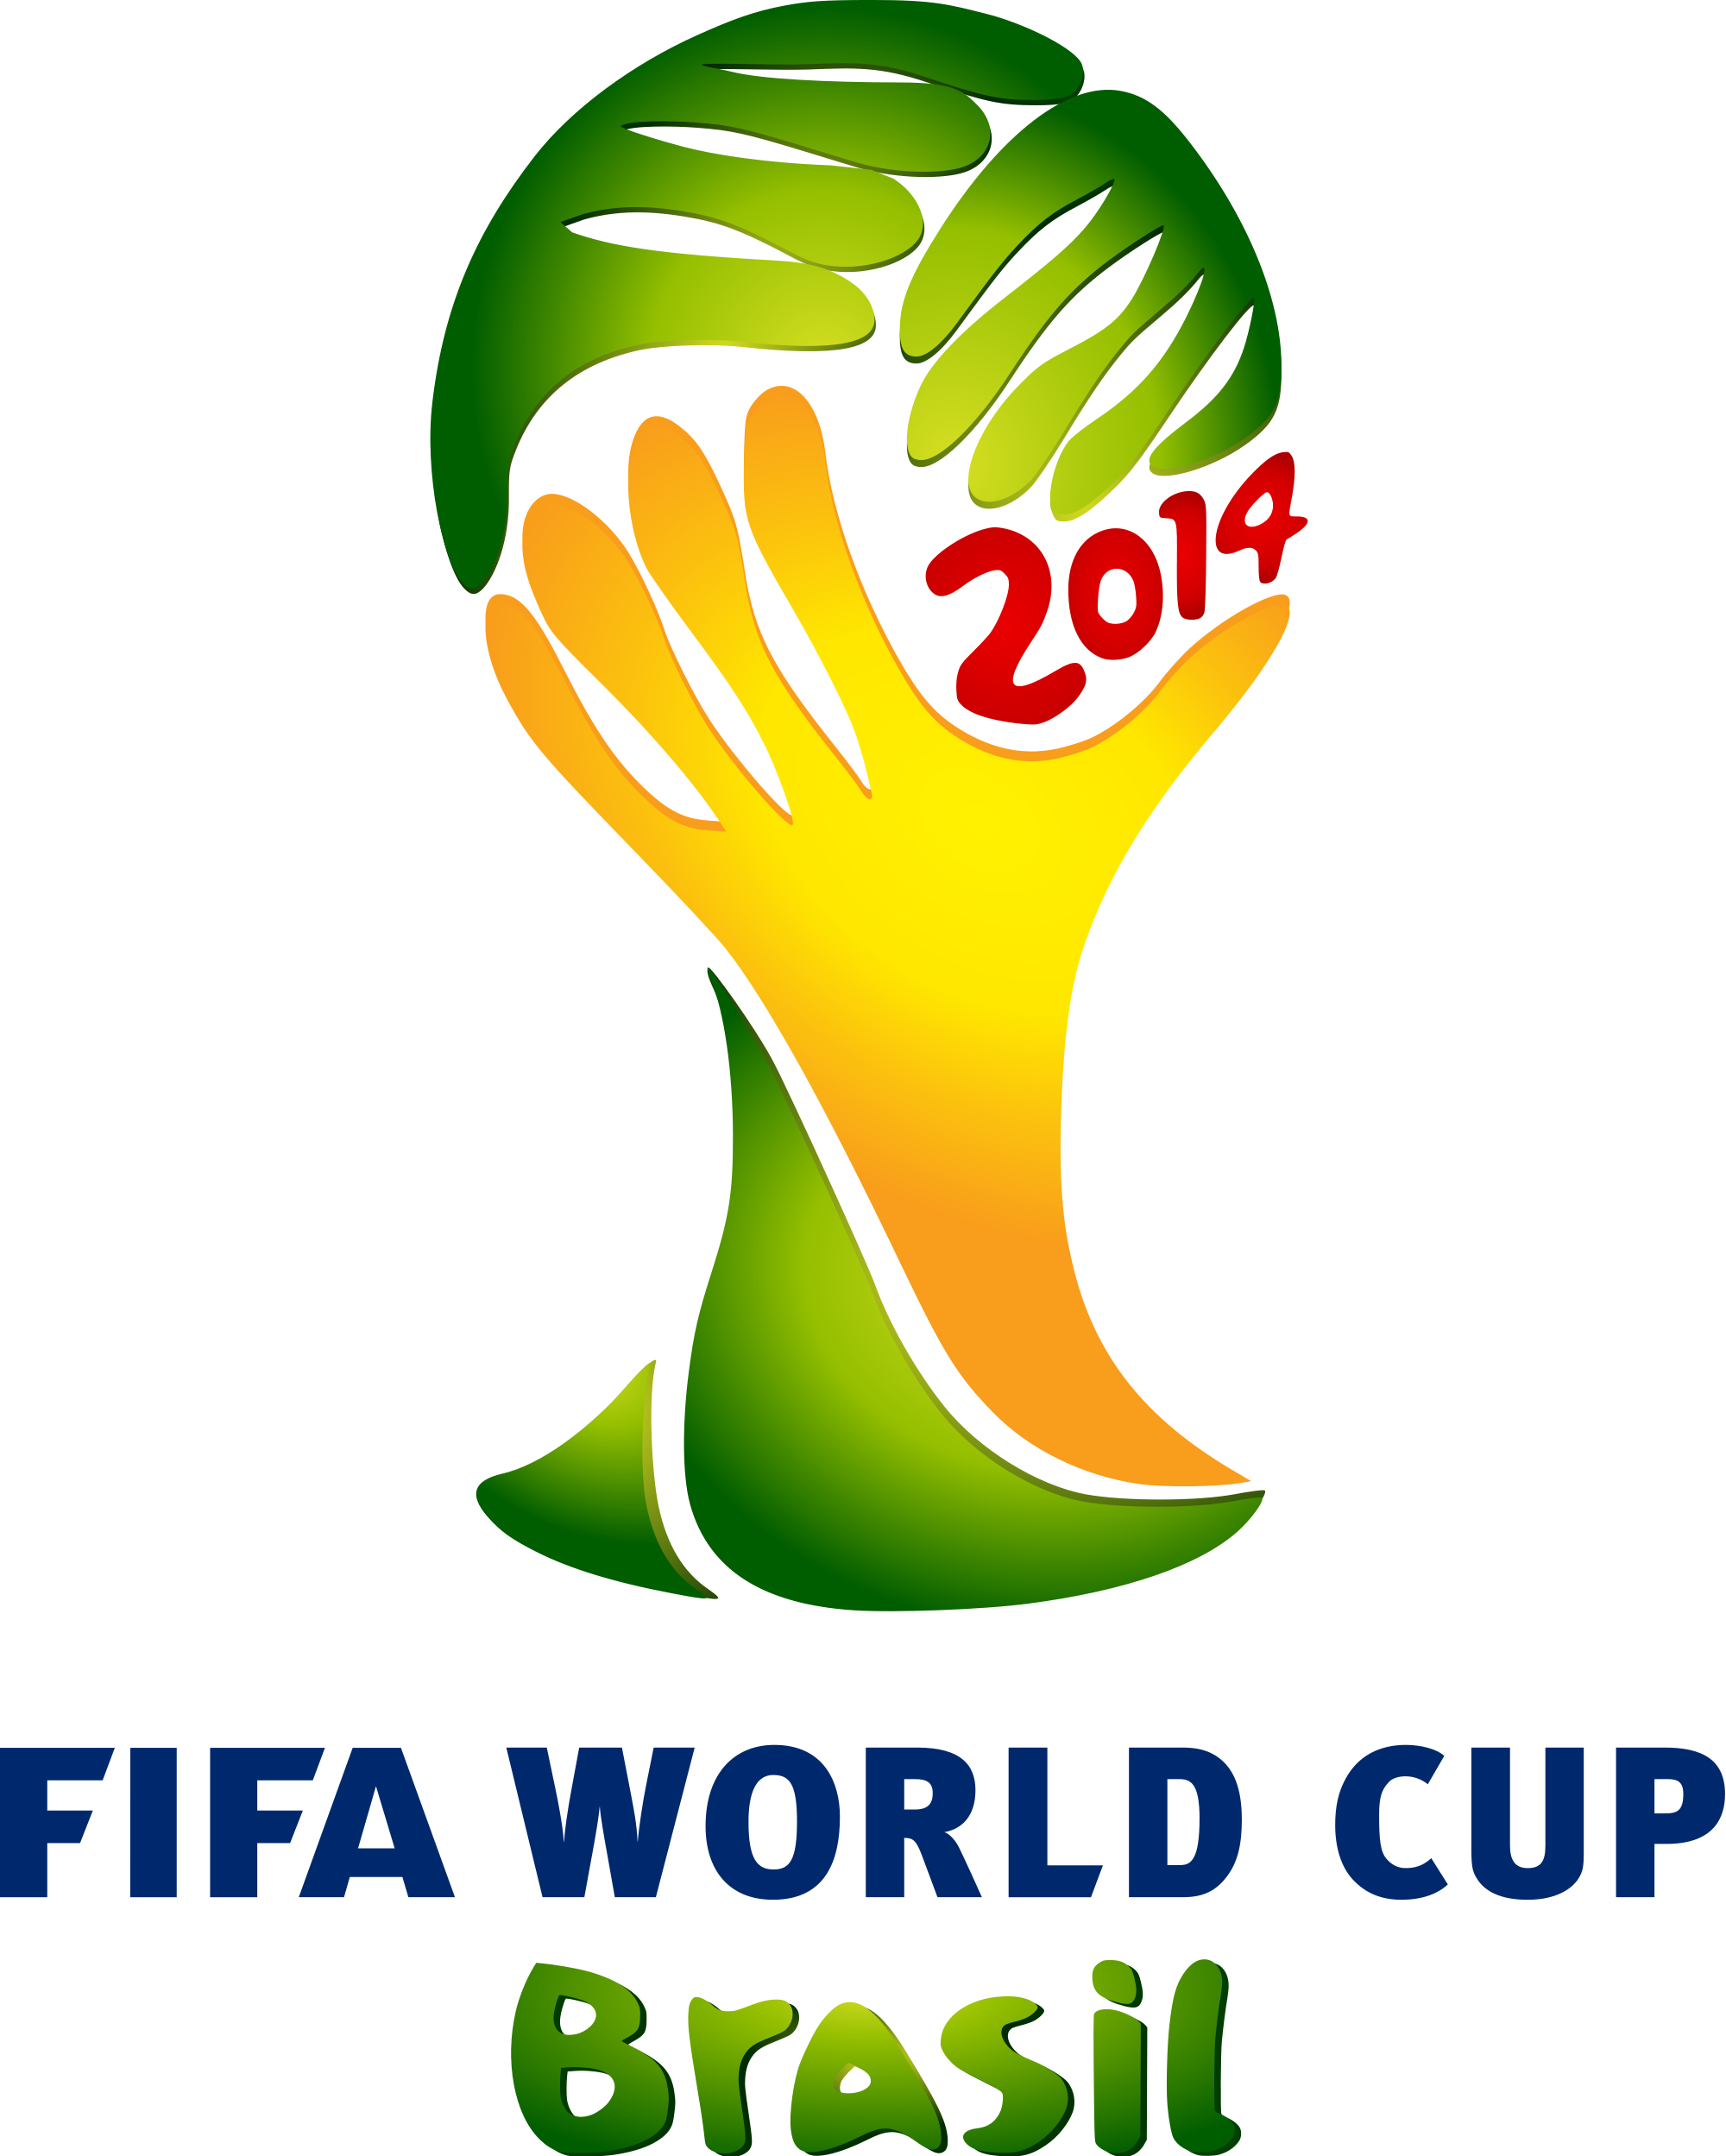 2014 Fifa World Cup World Cup Logo Fifa 2014 World Cup Brazil World Cup